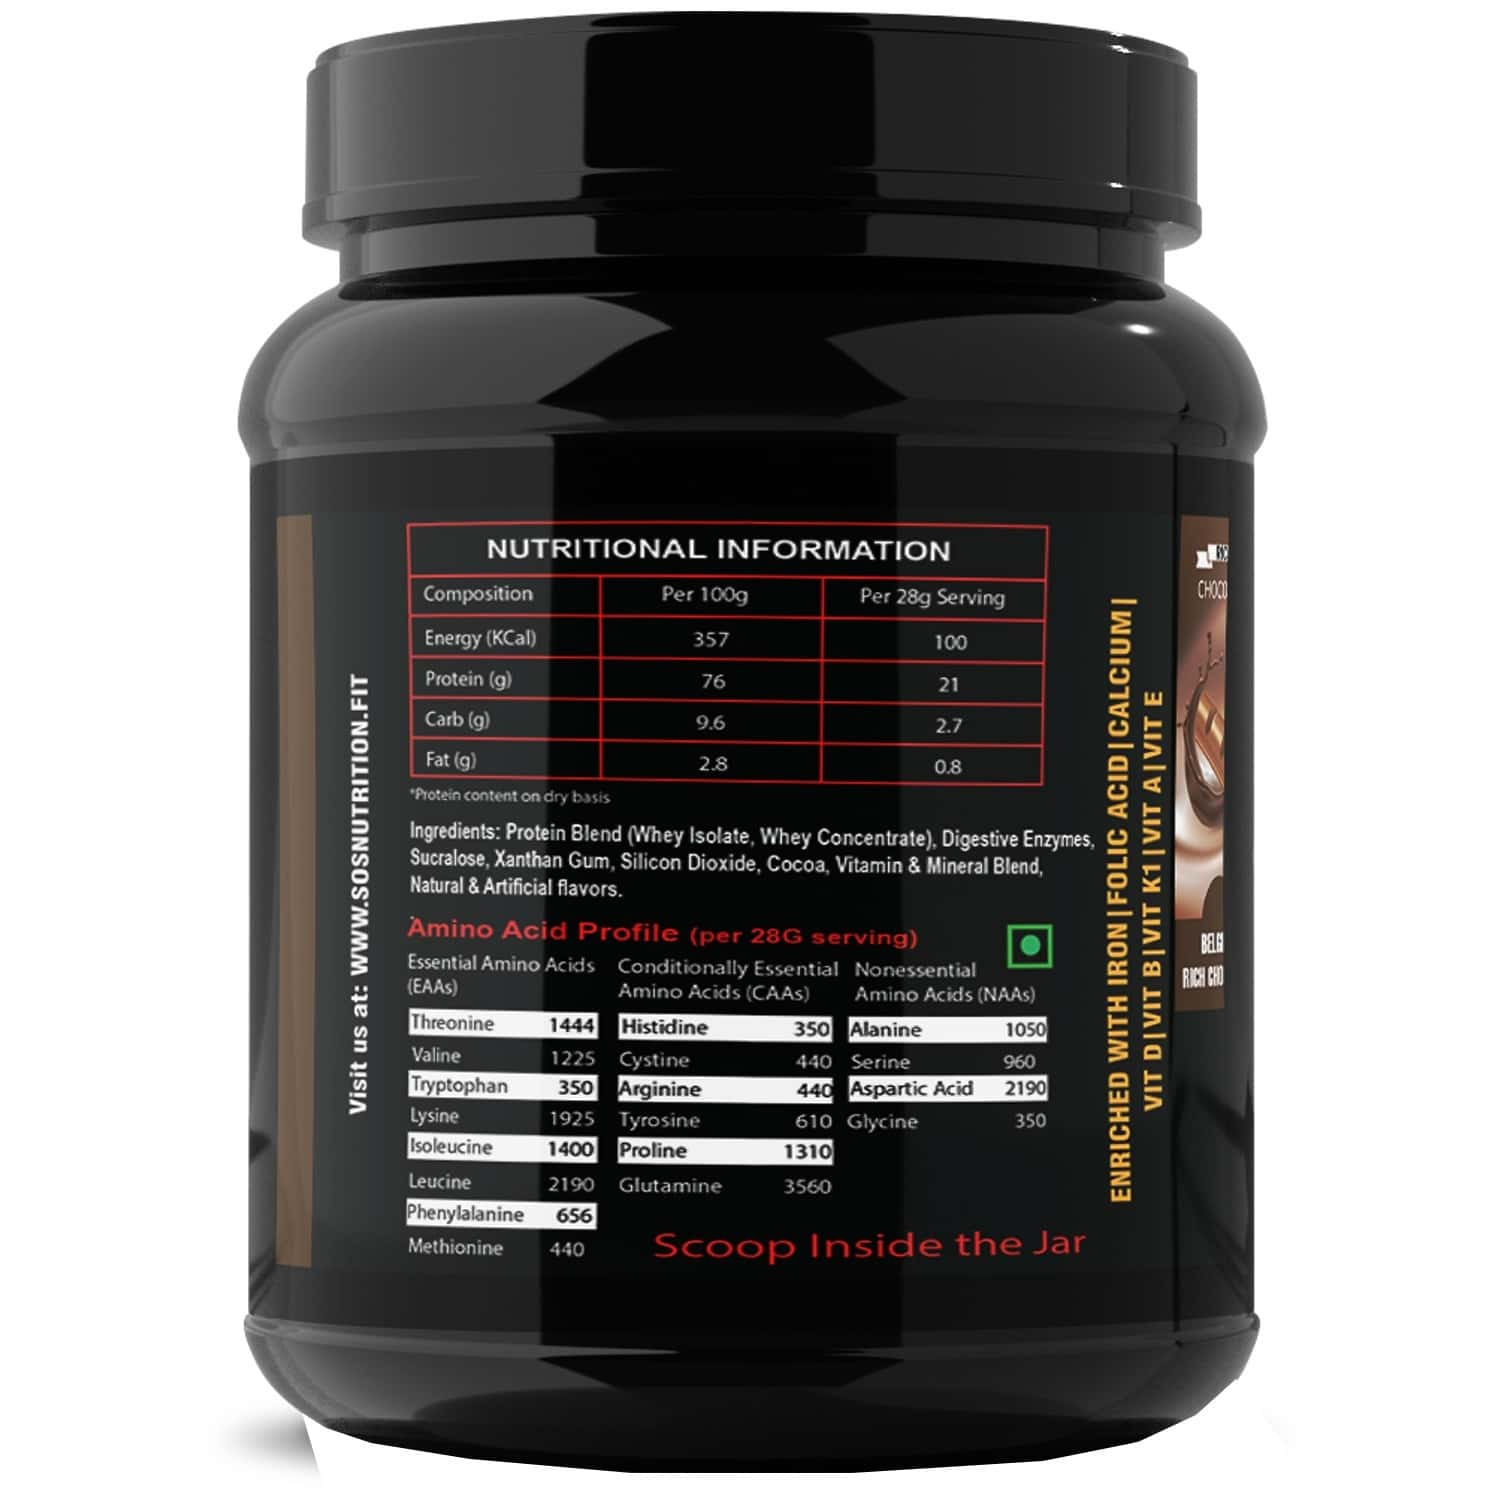 Sos Nutrition Slimming Max Weight Loss Chocolate Whey Protein -909g (skin Glow, Healthy Hair)